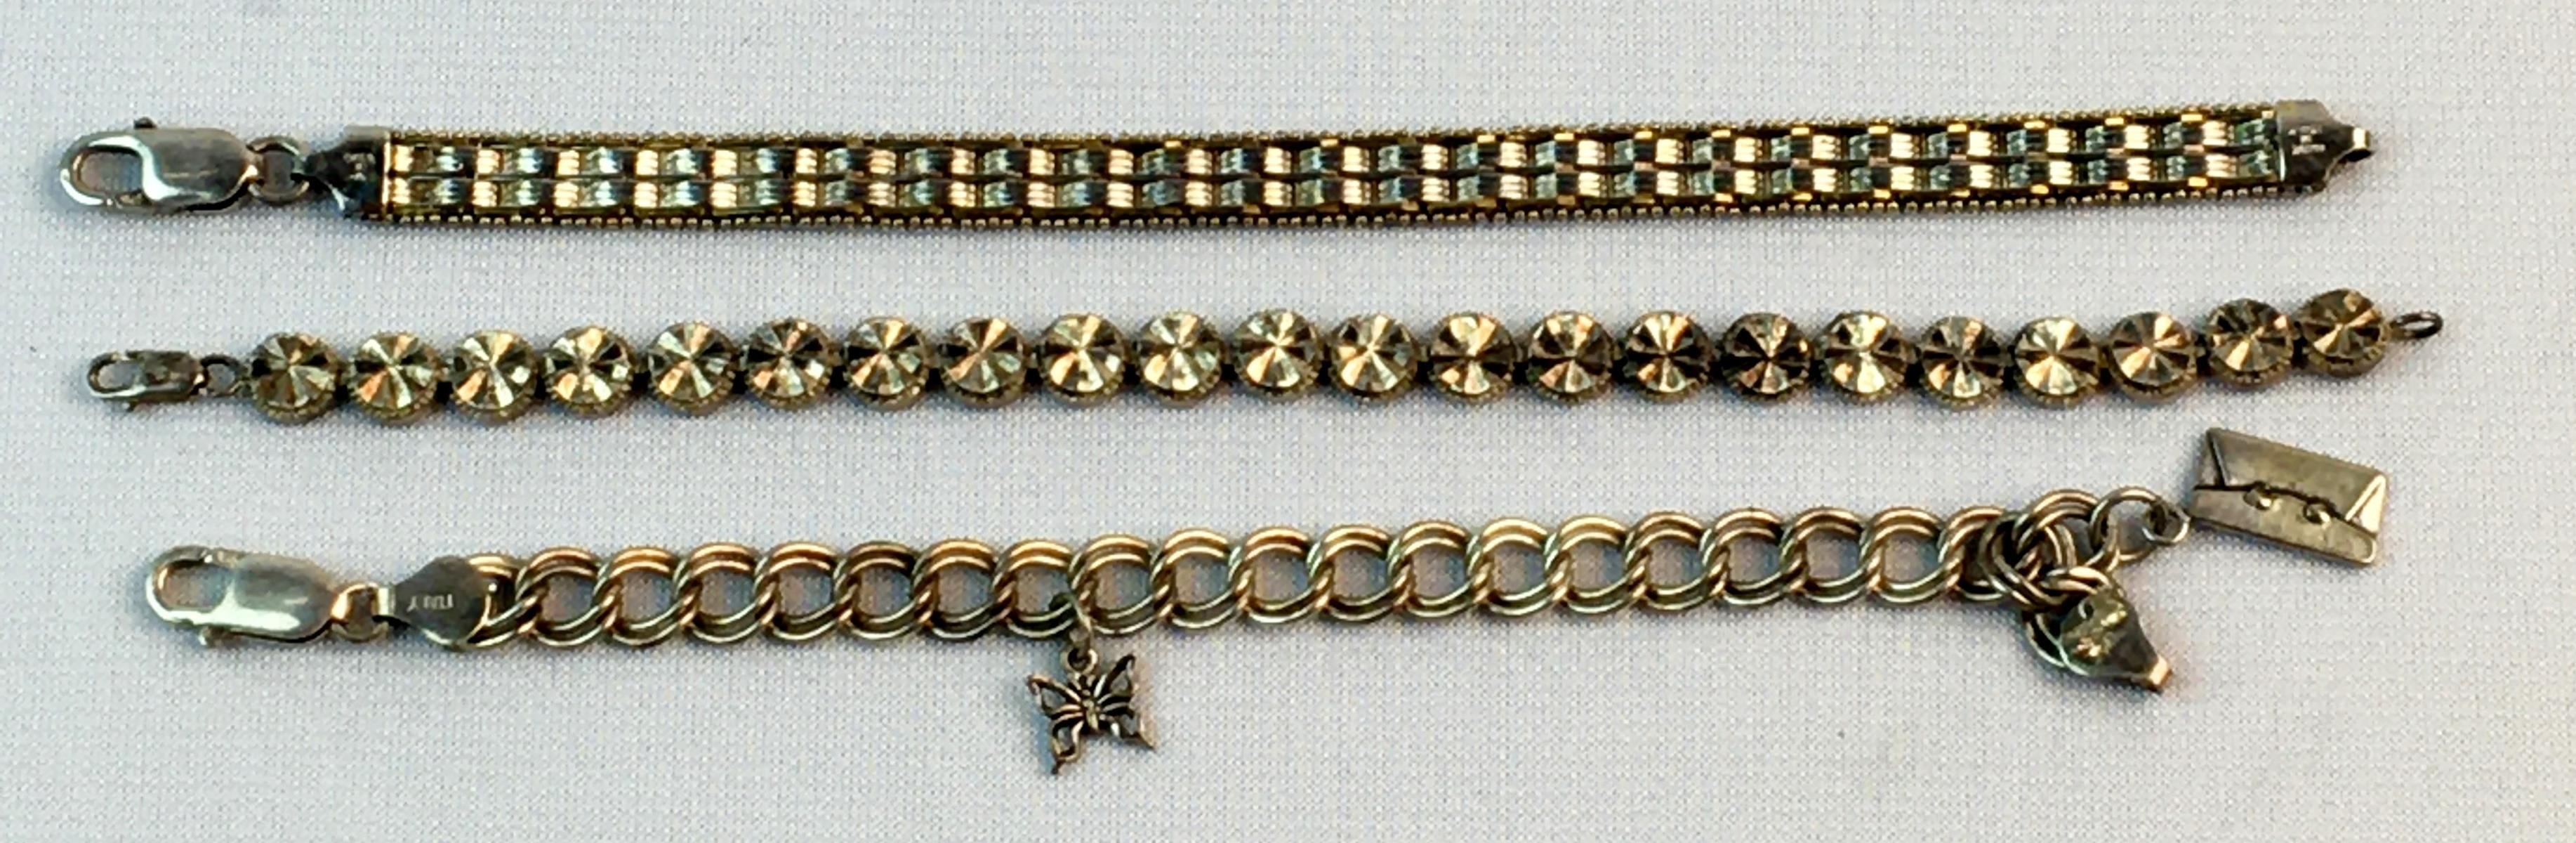 Vintage Lot of 3 Sterling Silver Bracelets (Beverly Hills Silver, Charm, Italy)